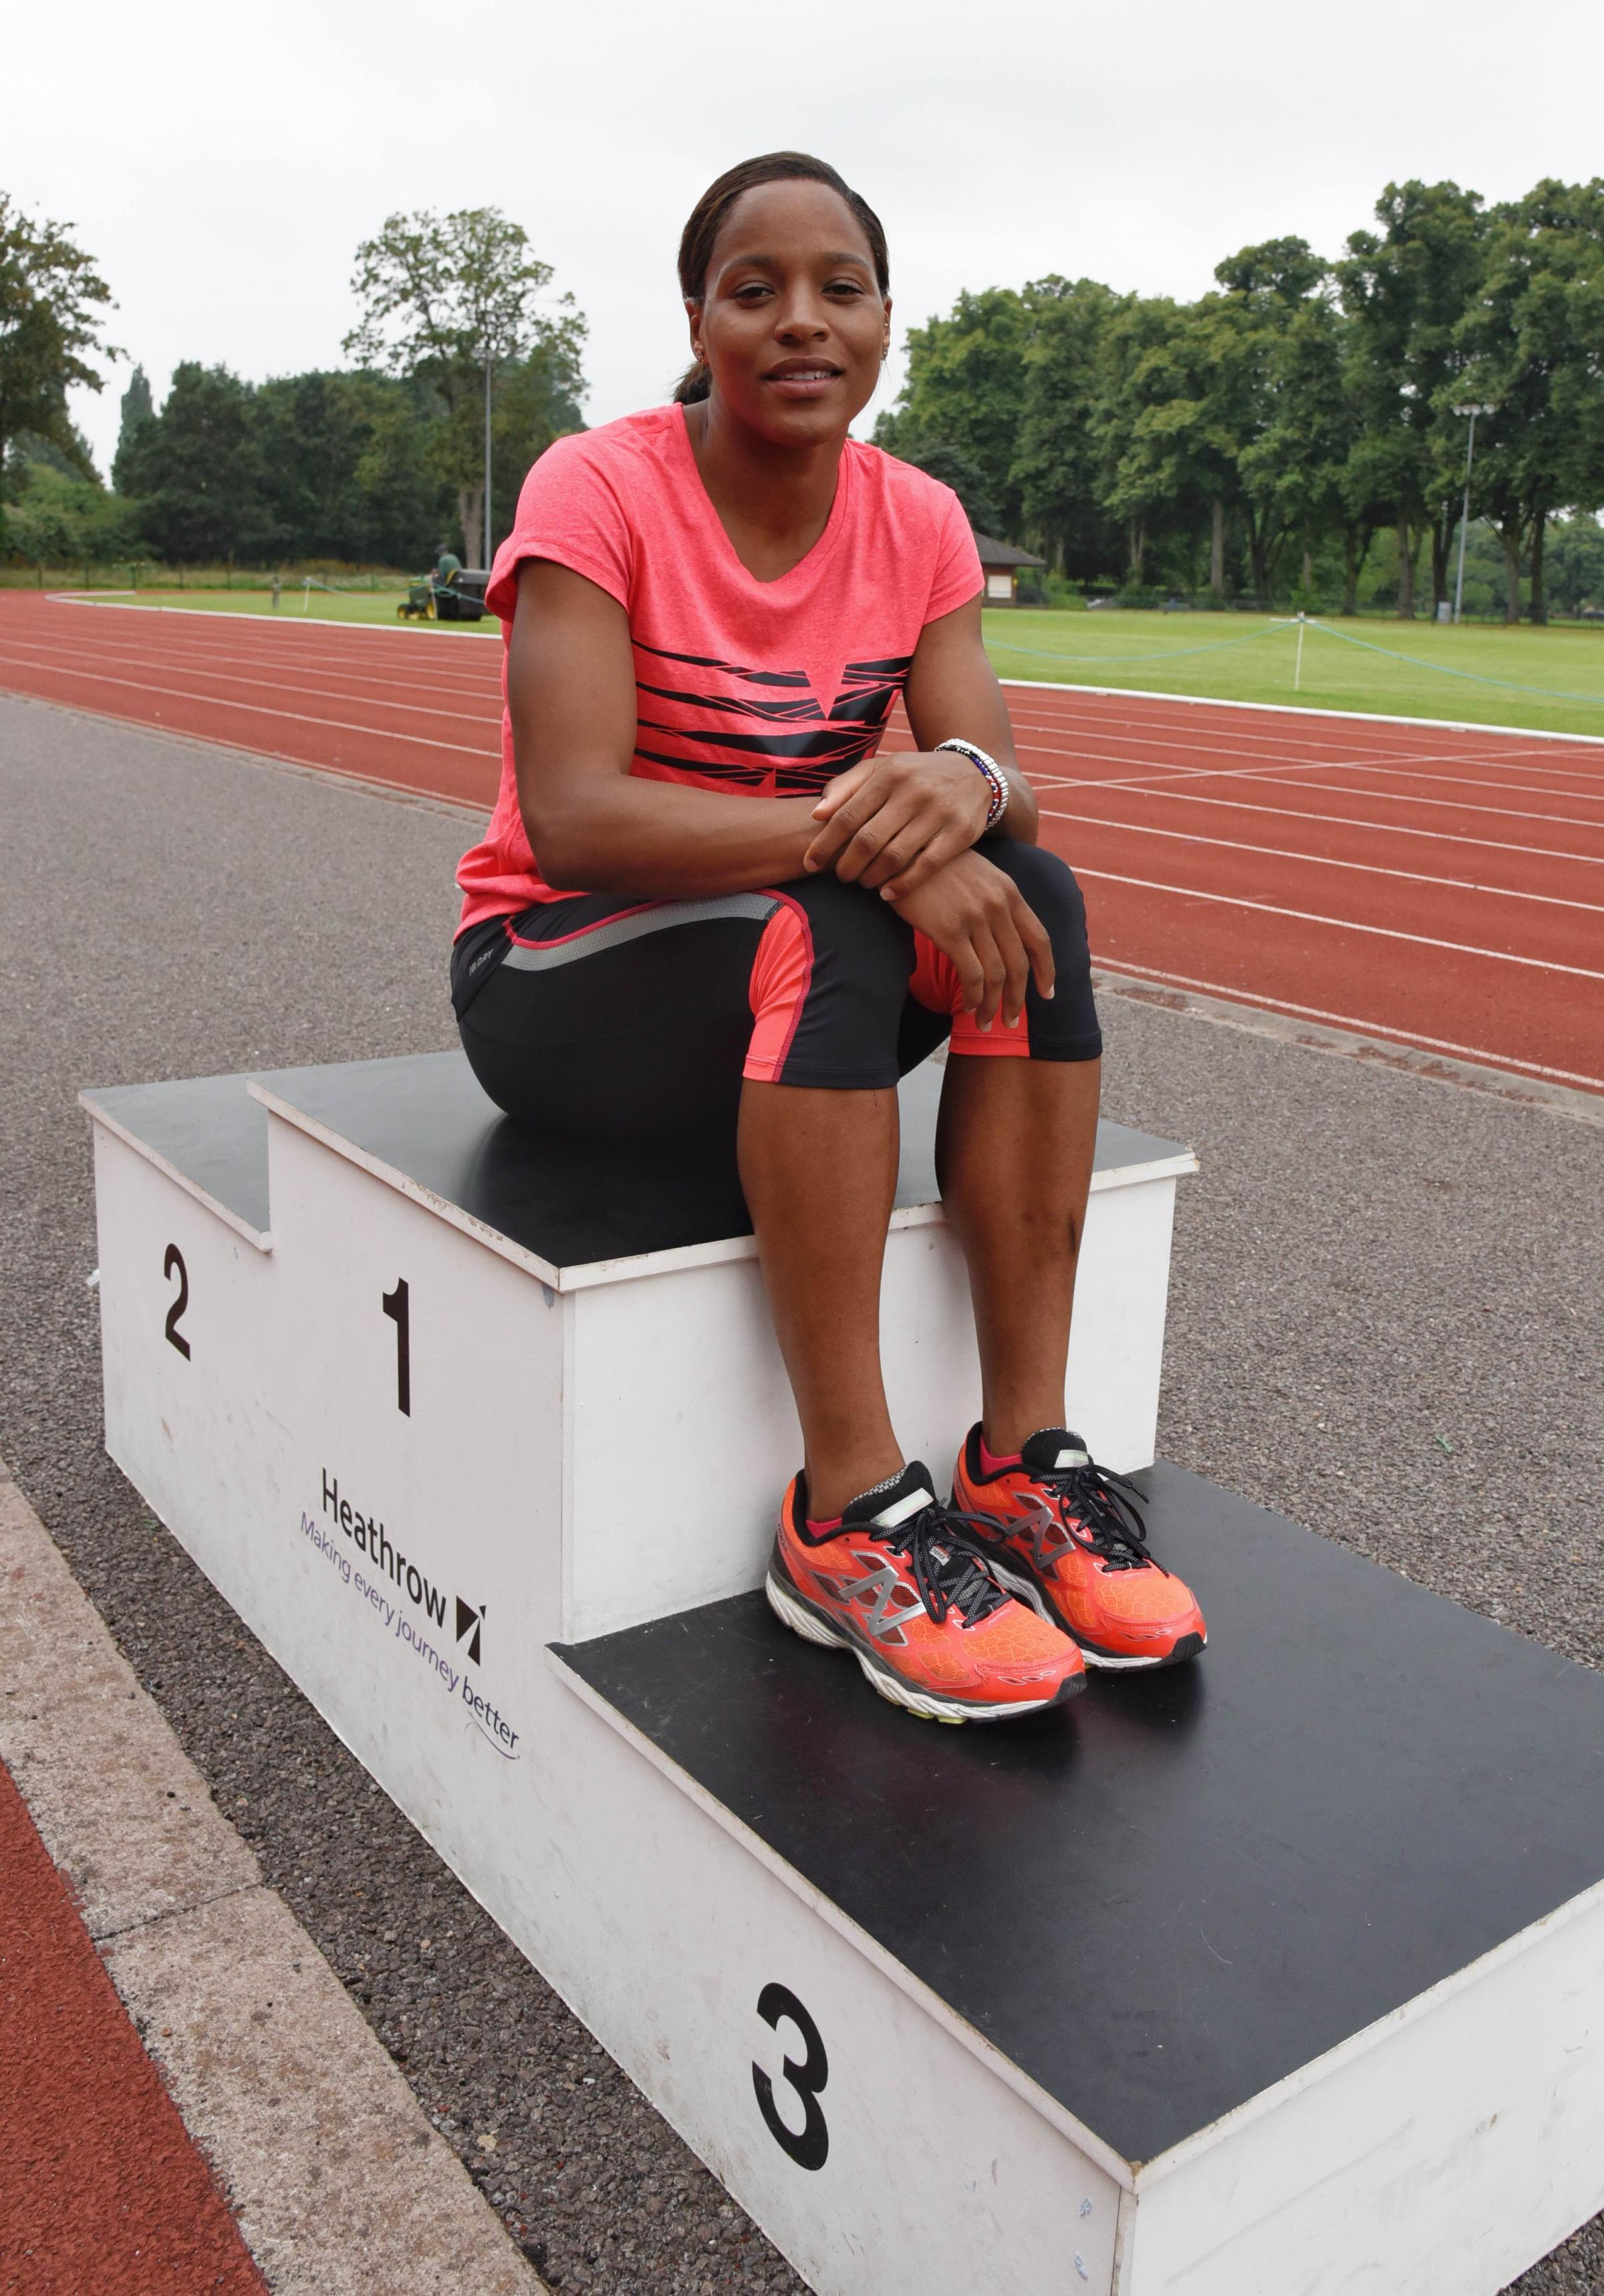 Windsor, Slough, Eton & Hounslow Athletics Club star Shelayna Oskan-Clarke won the 800-metre title at the UK Indoor Championships.